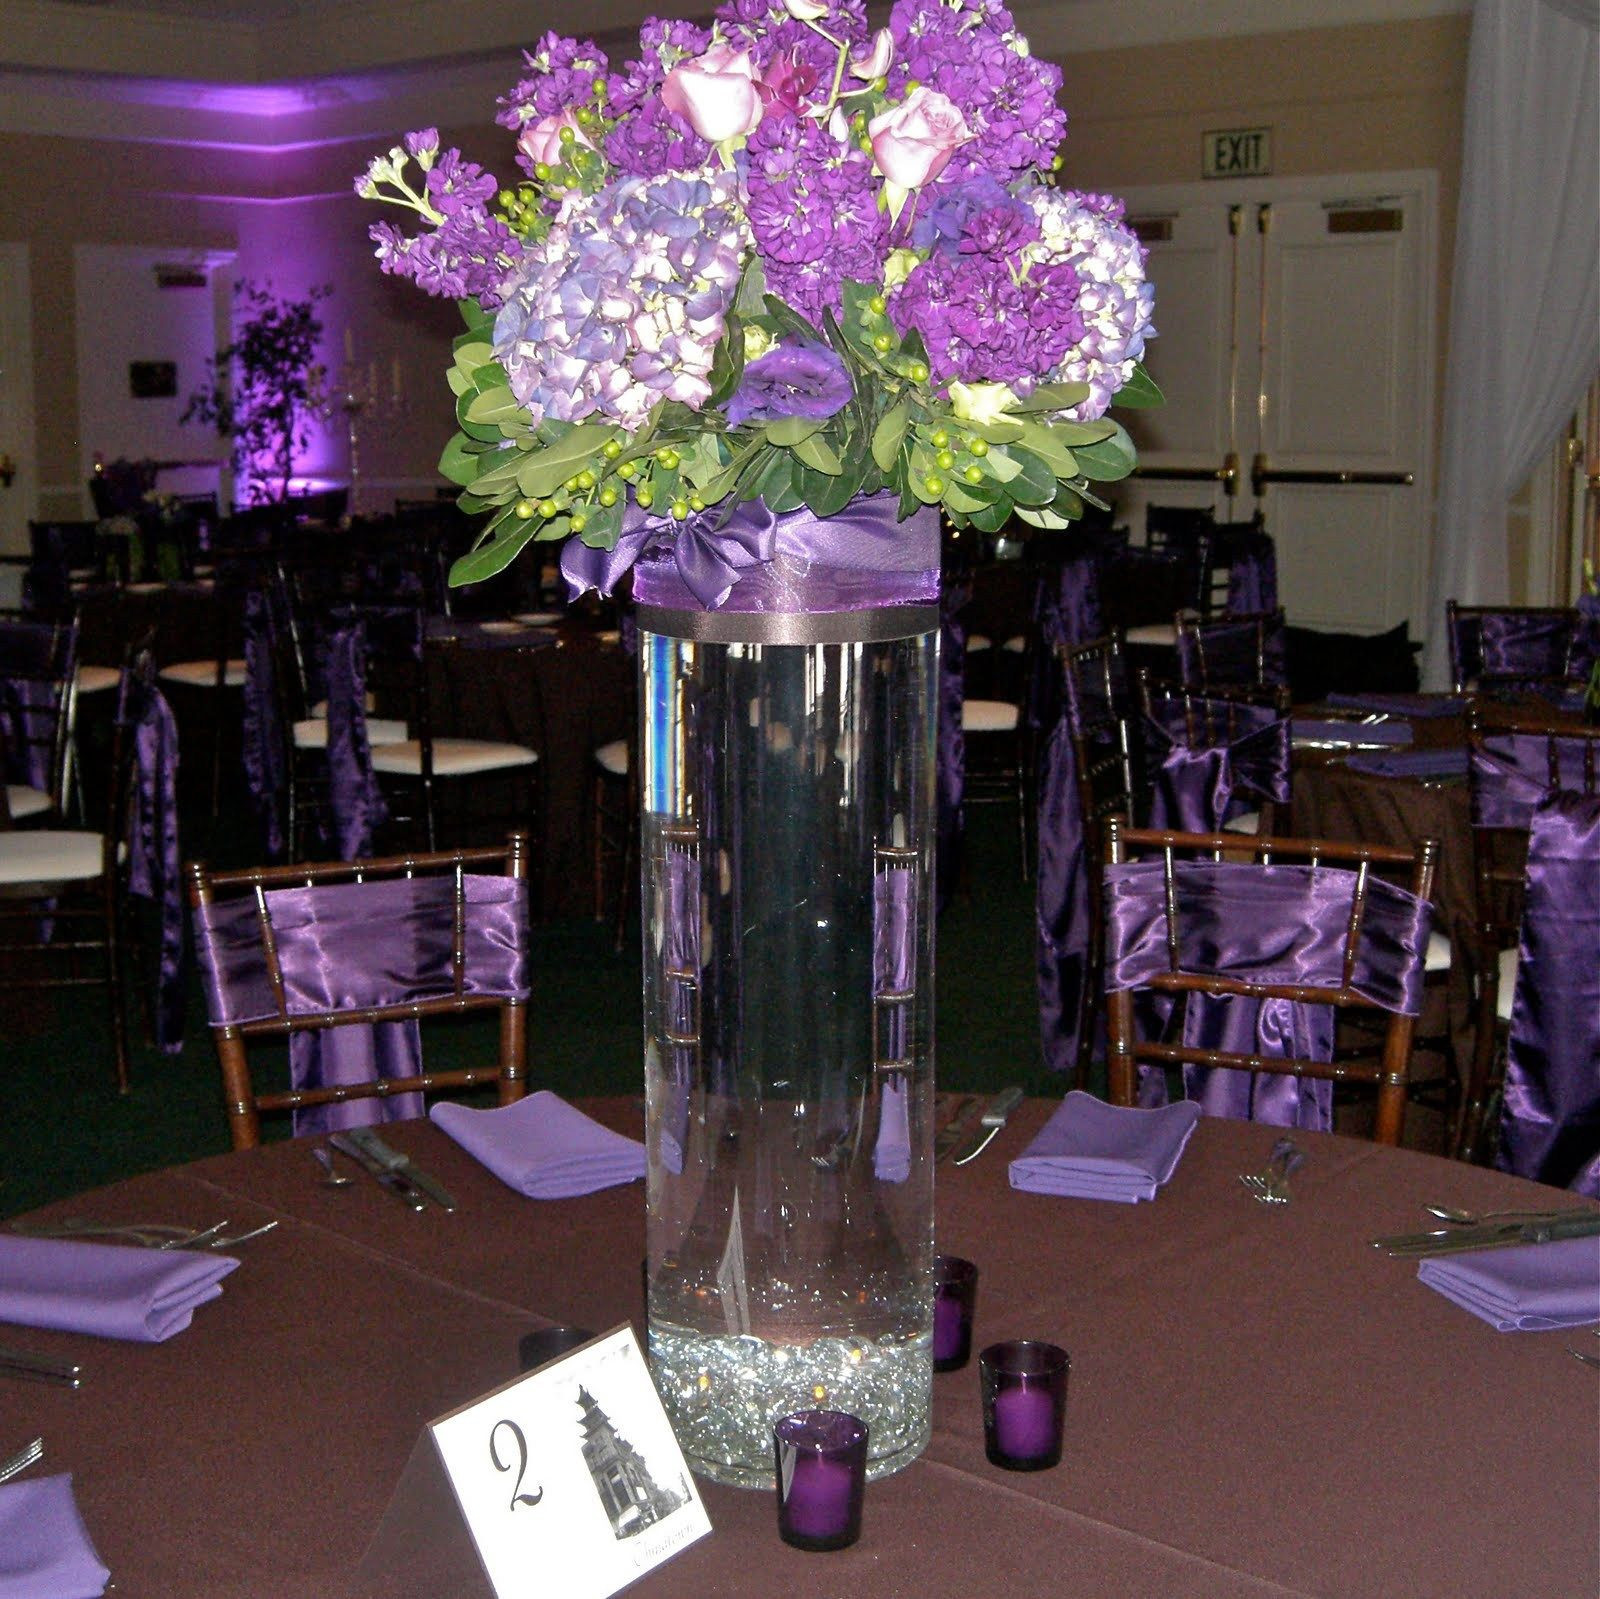 21 Famous 20 Inch Clear Glass Cylinder Vase 2021 free download 20 inch clear glass cylinder vase of 23 tall cylinder vases the weekly world with bulk glass vases for centerpieces vase and cellar image avorcor